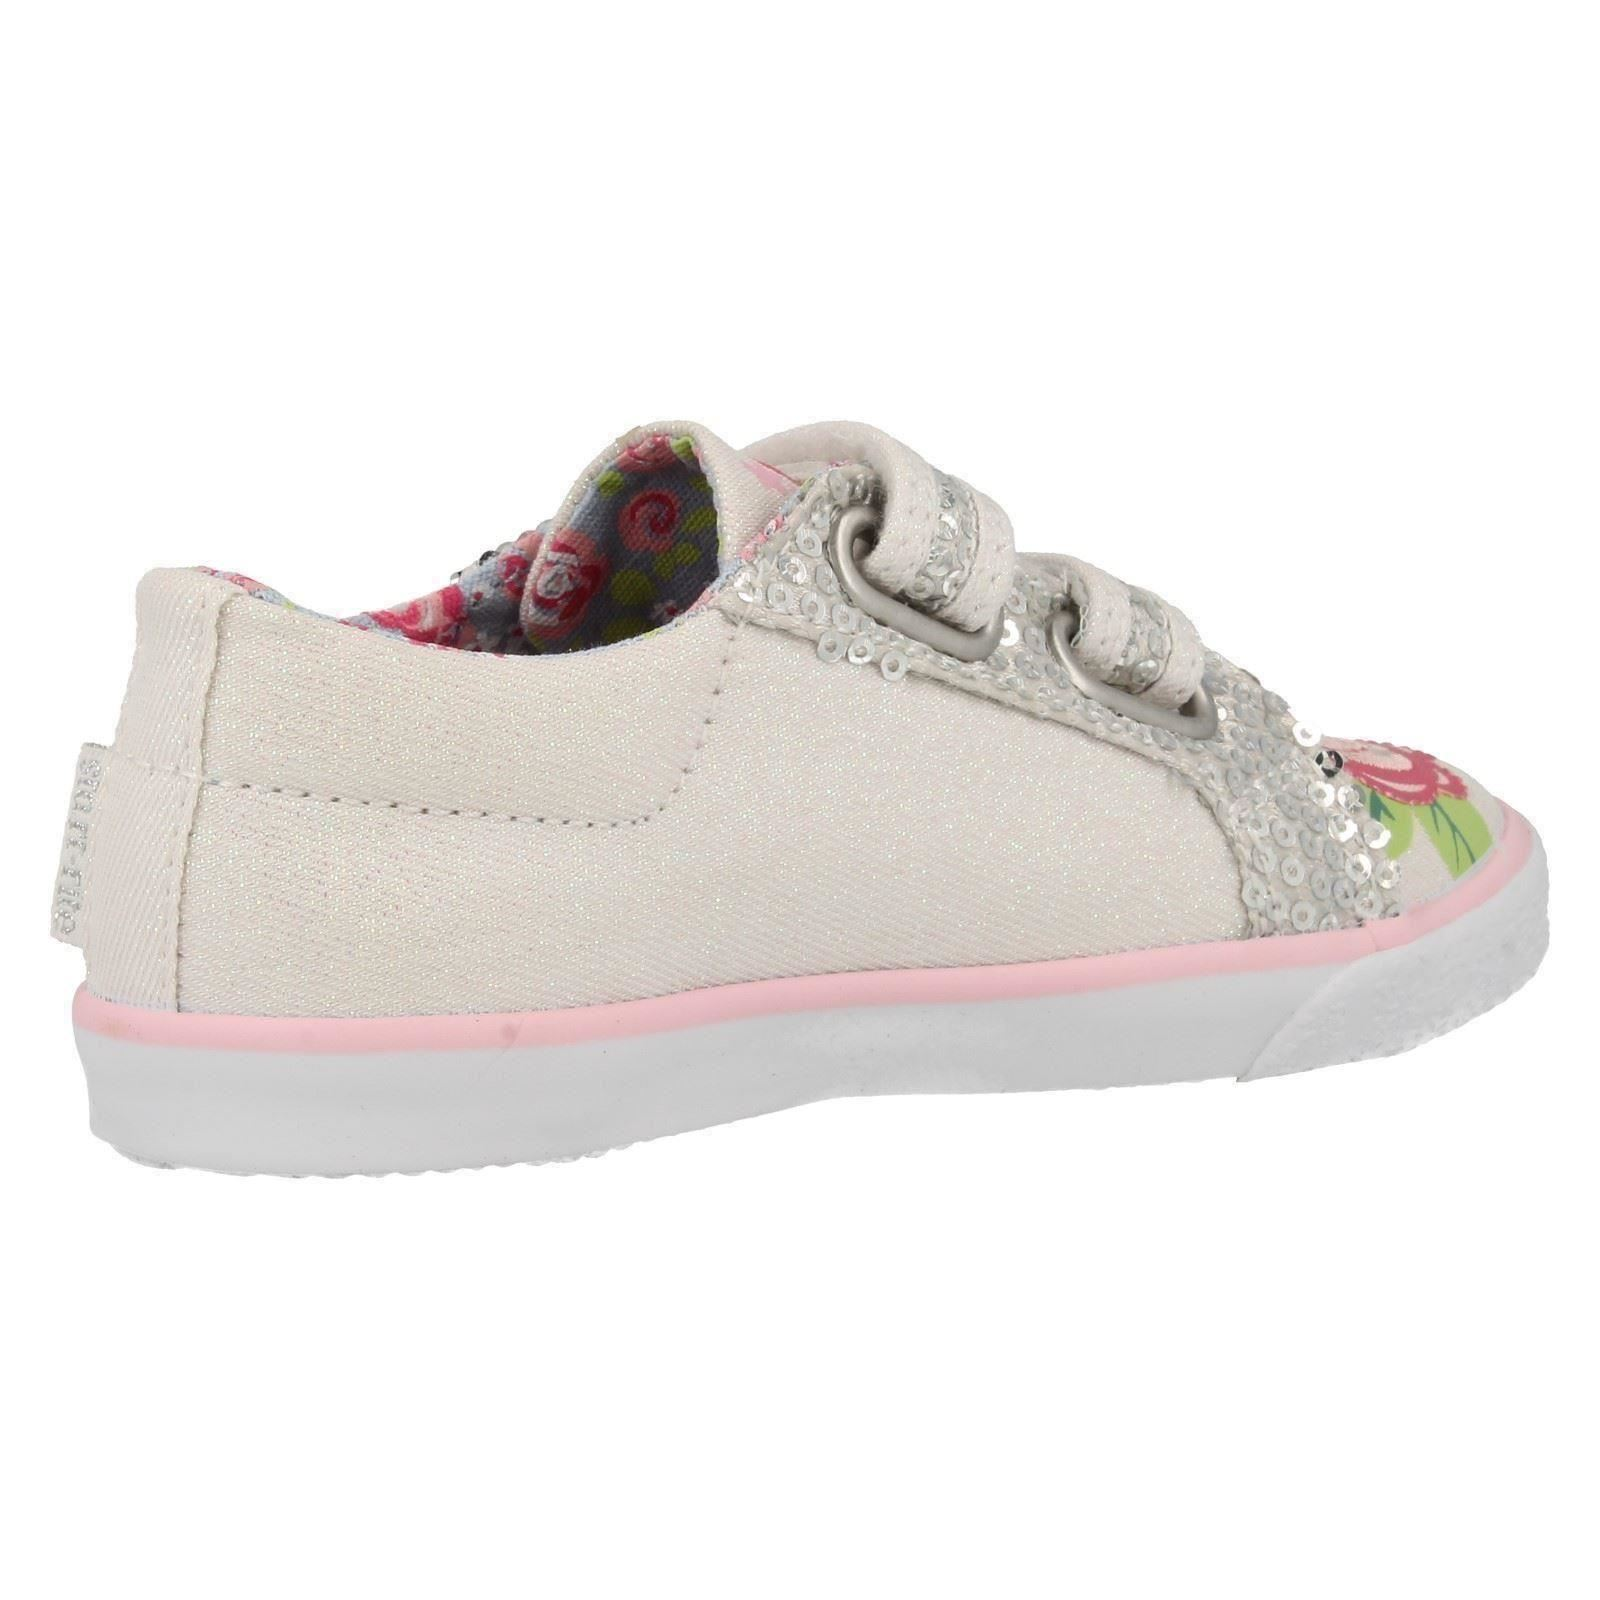 Girls Casual Startrite Washable Canvas Pumps Rosebud